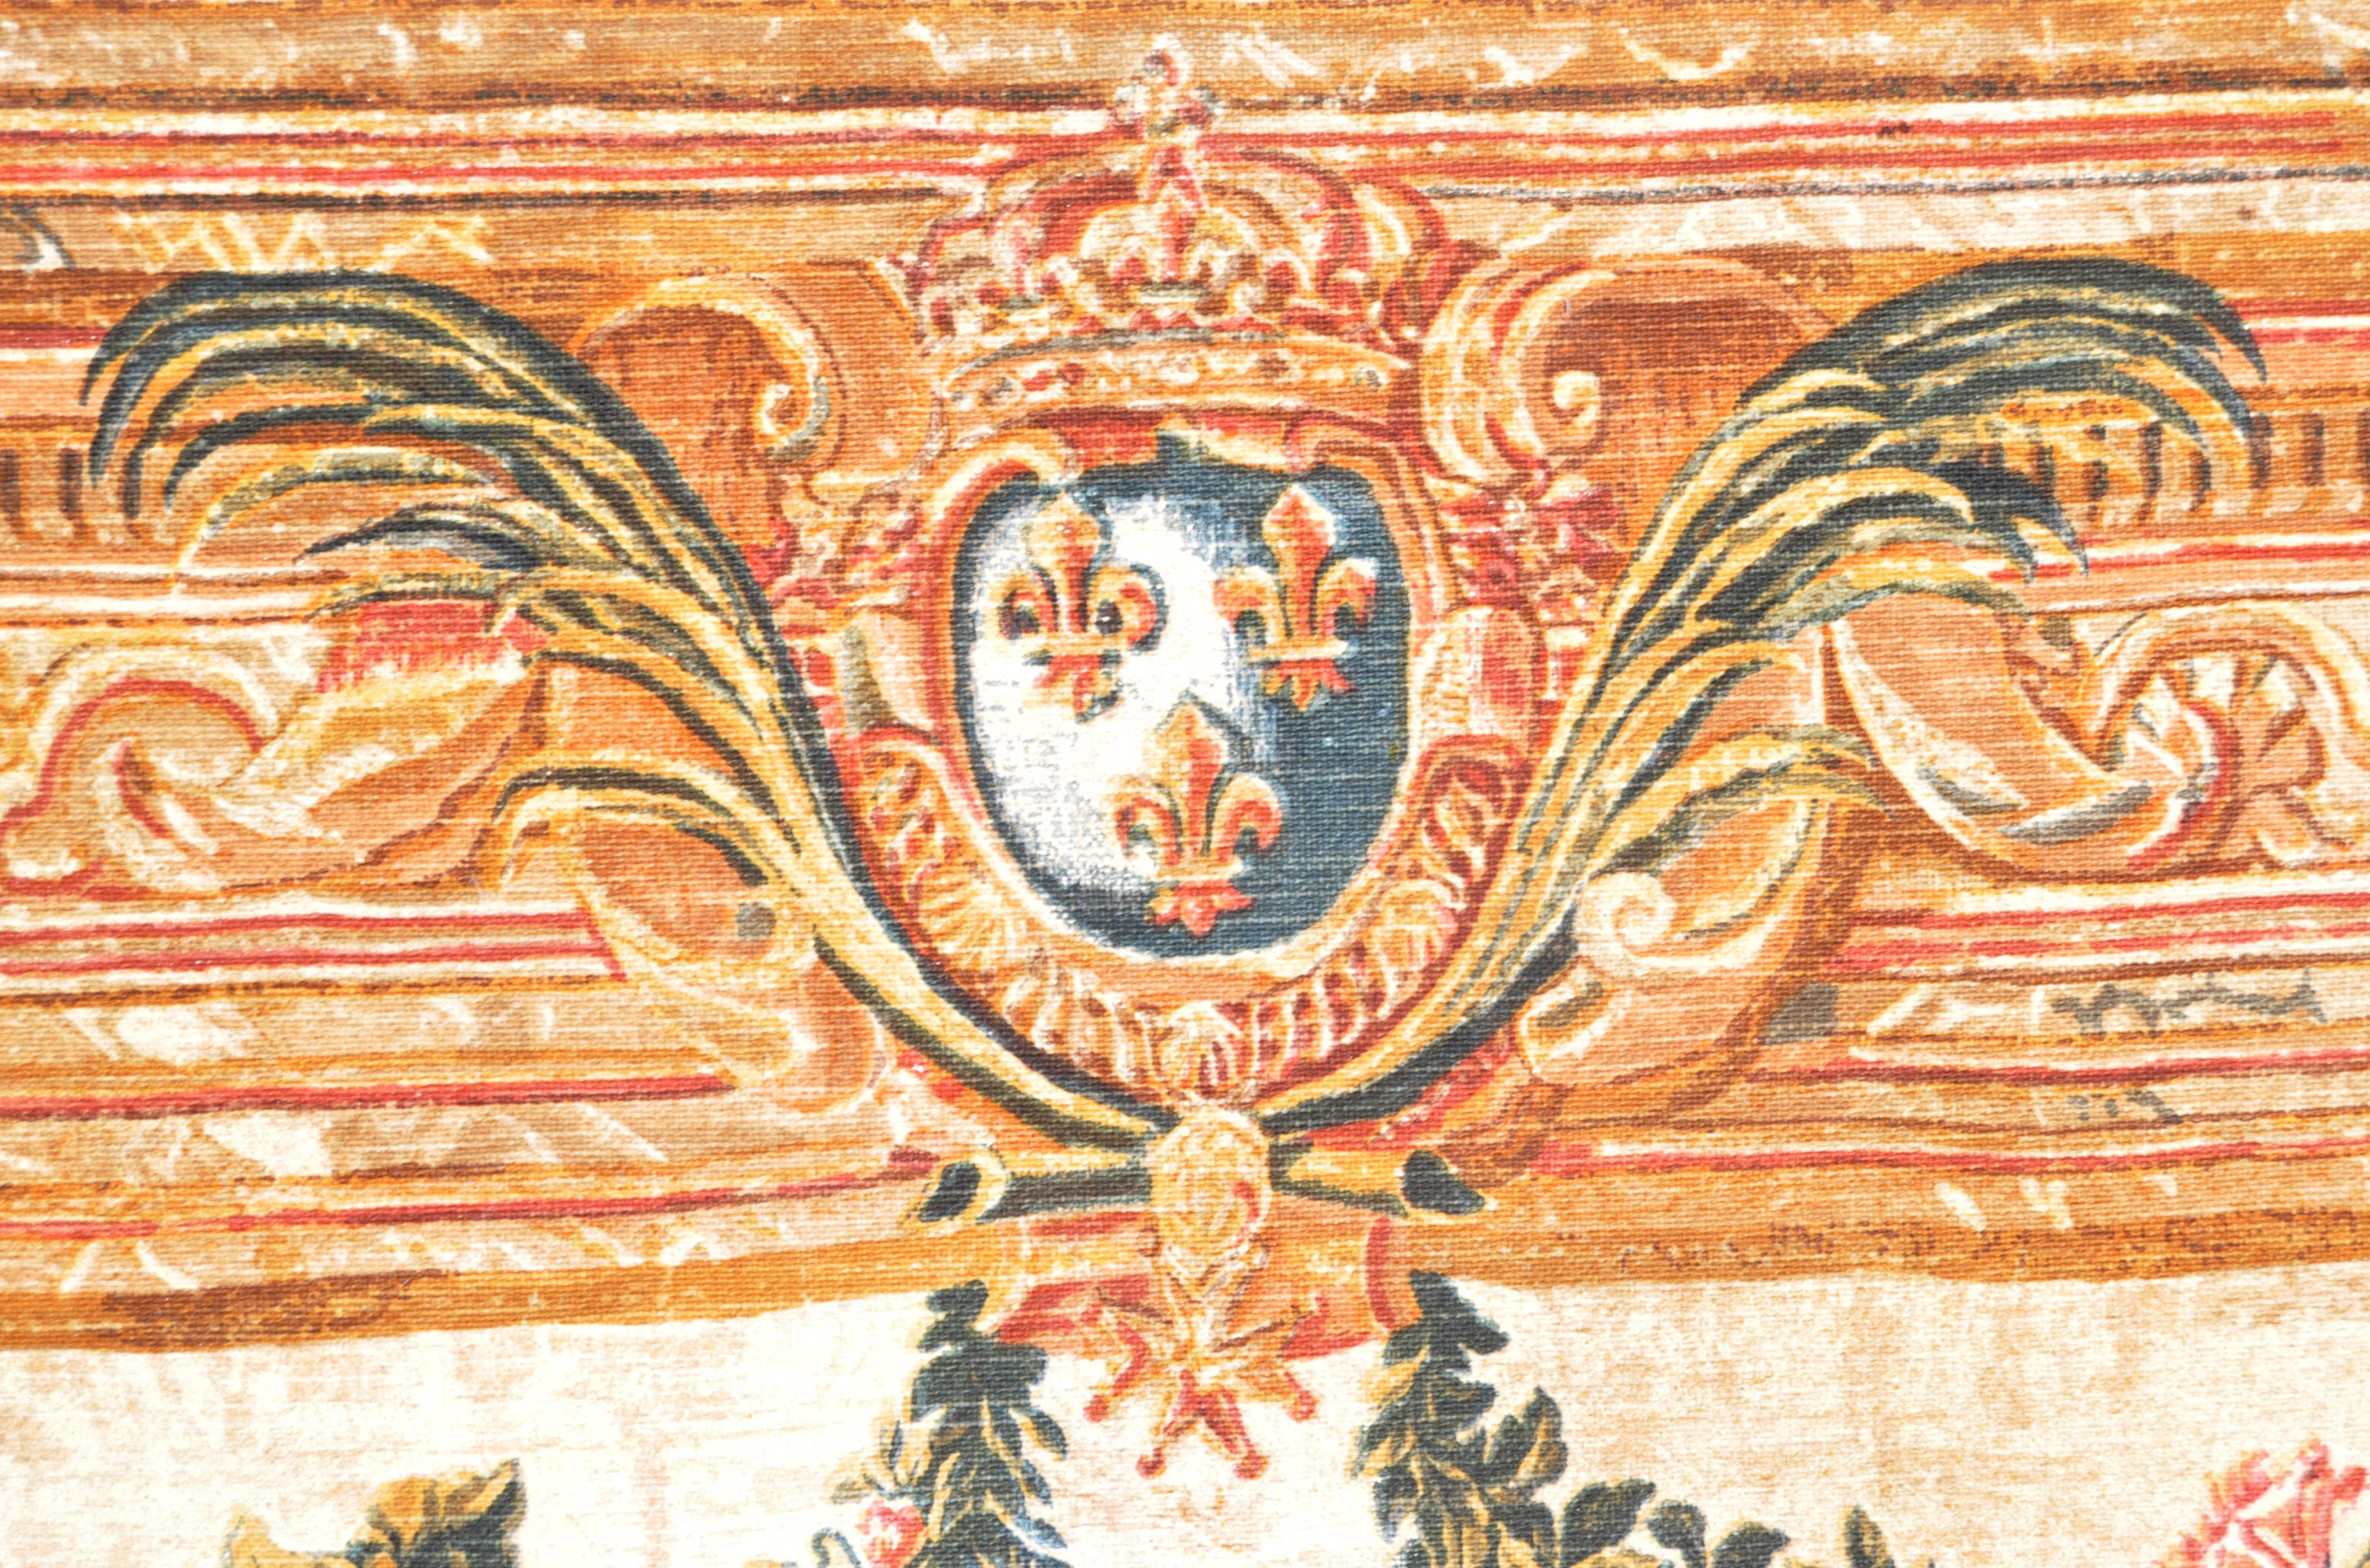 Lot 320 - 20TH CENTURY PALACE OF VERSAILLES HINES TAPESTRY